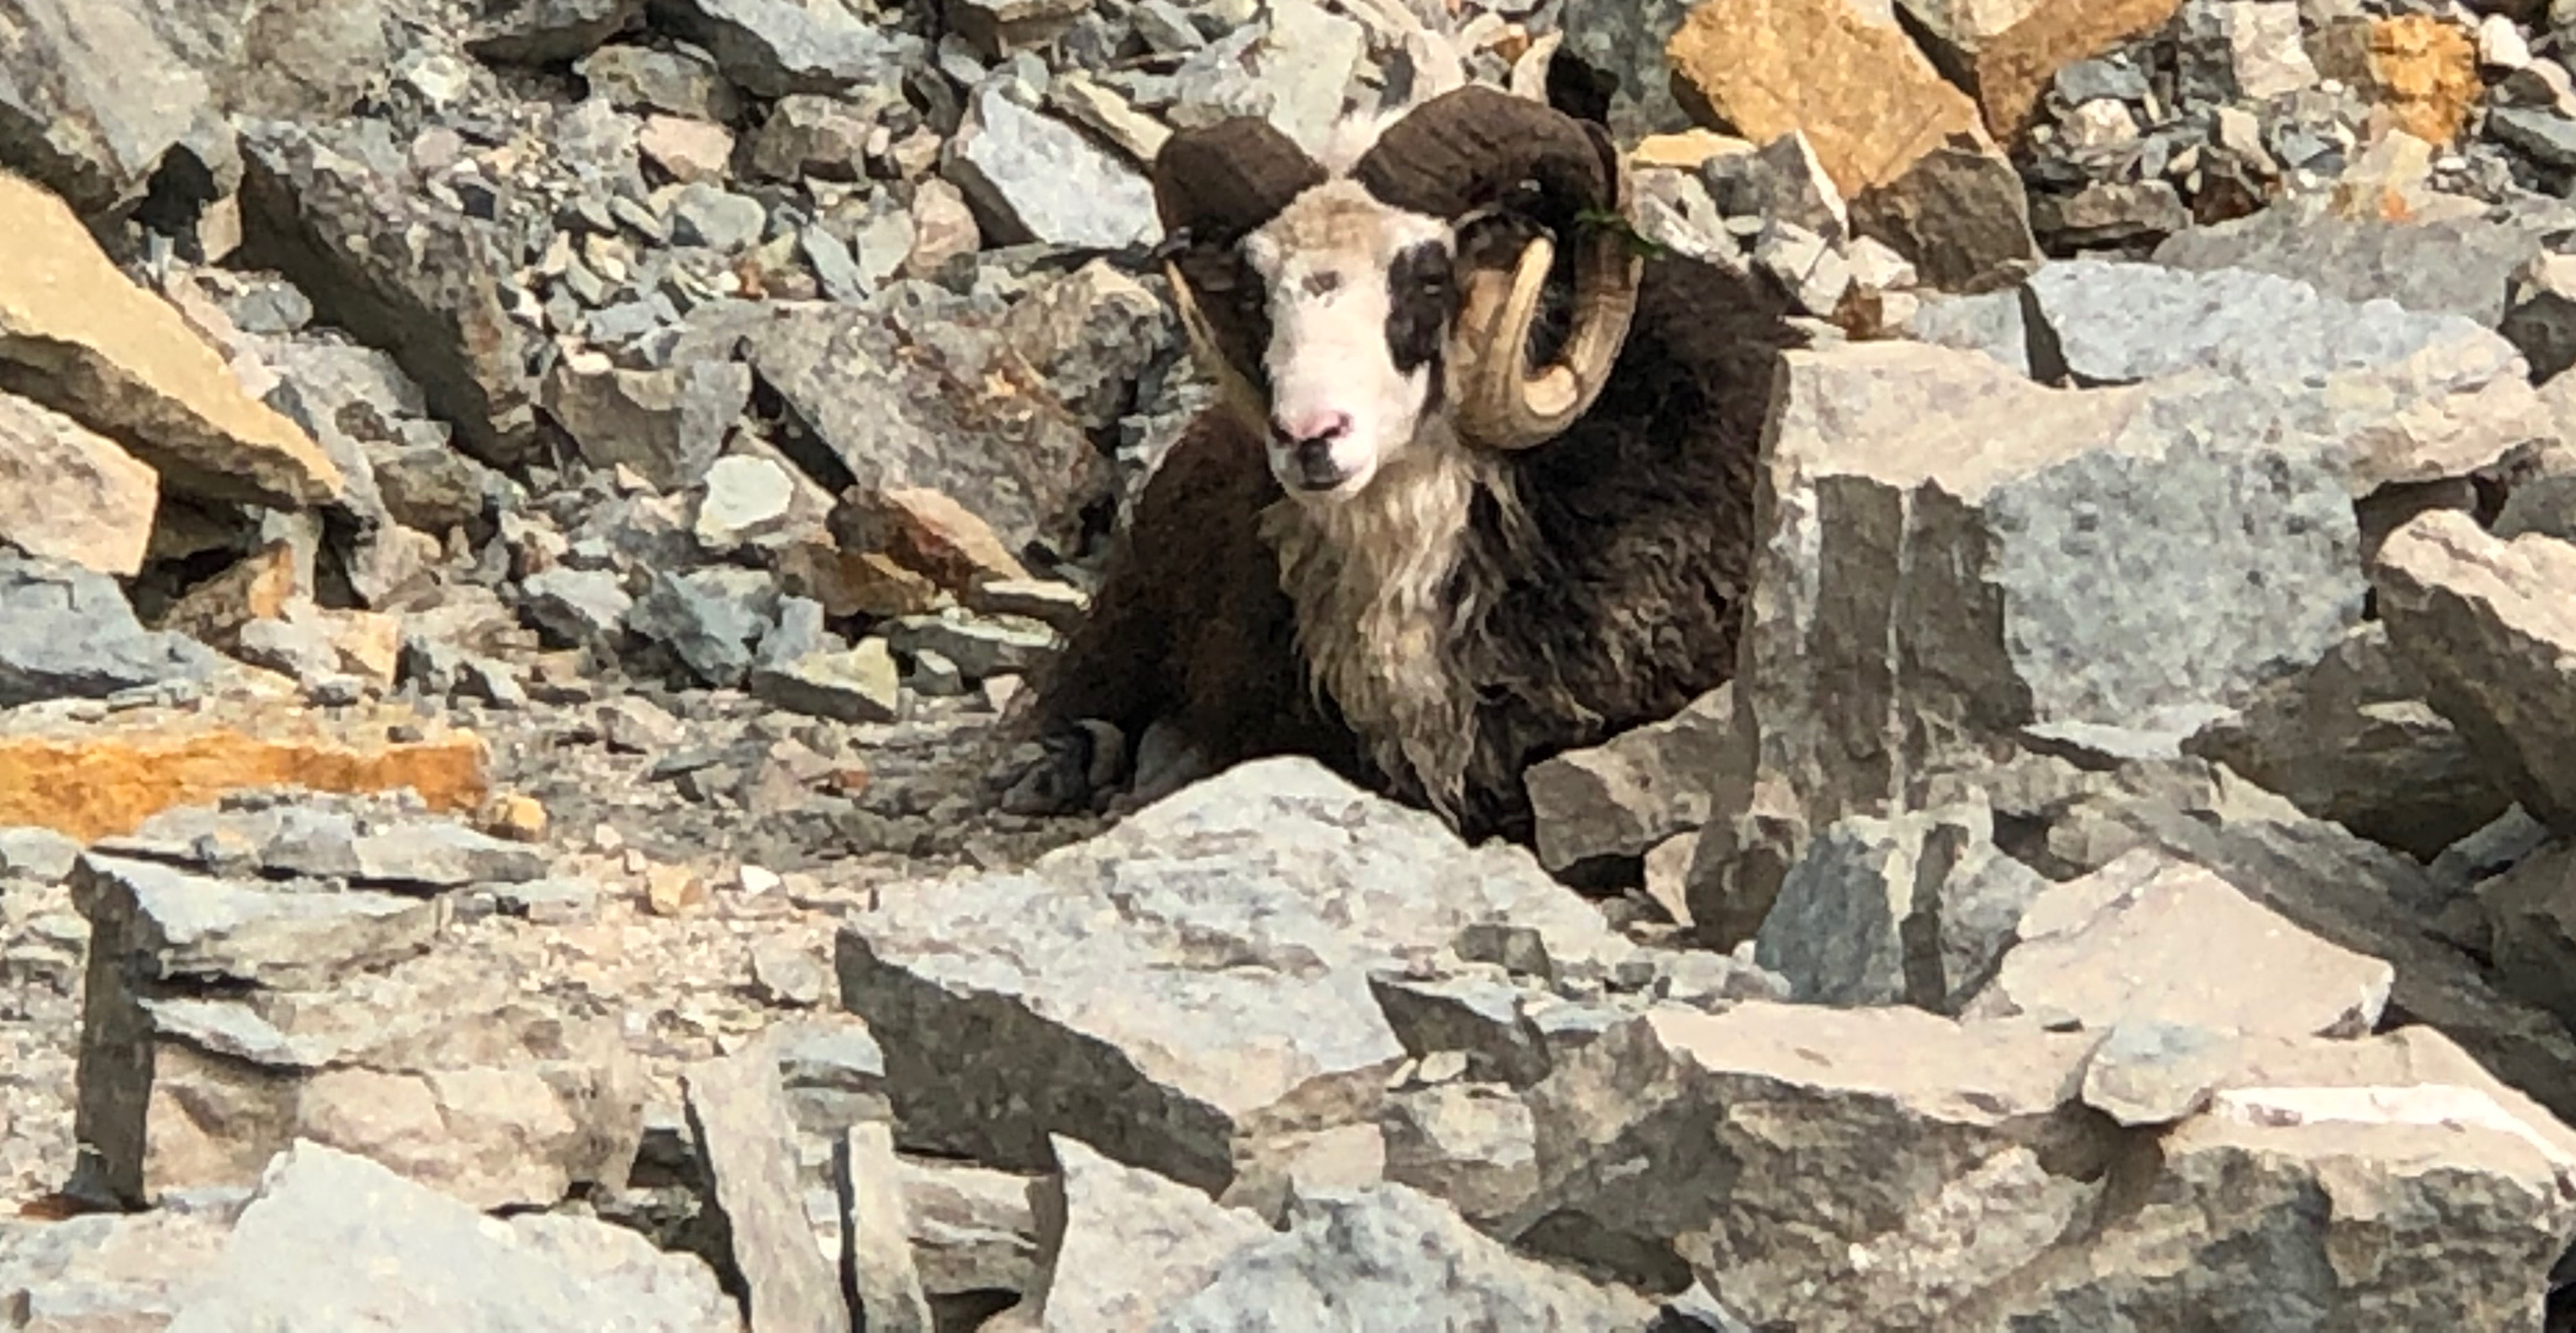 Ory Green works for Murphy Concrete and Construction and saw the ram in the quarry. (Photo courtesy Ory Green)